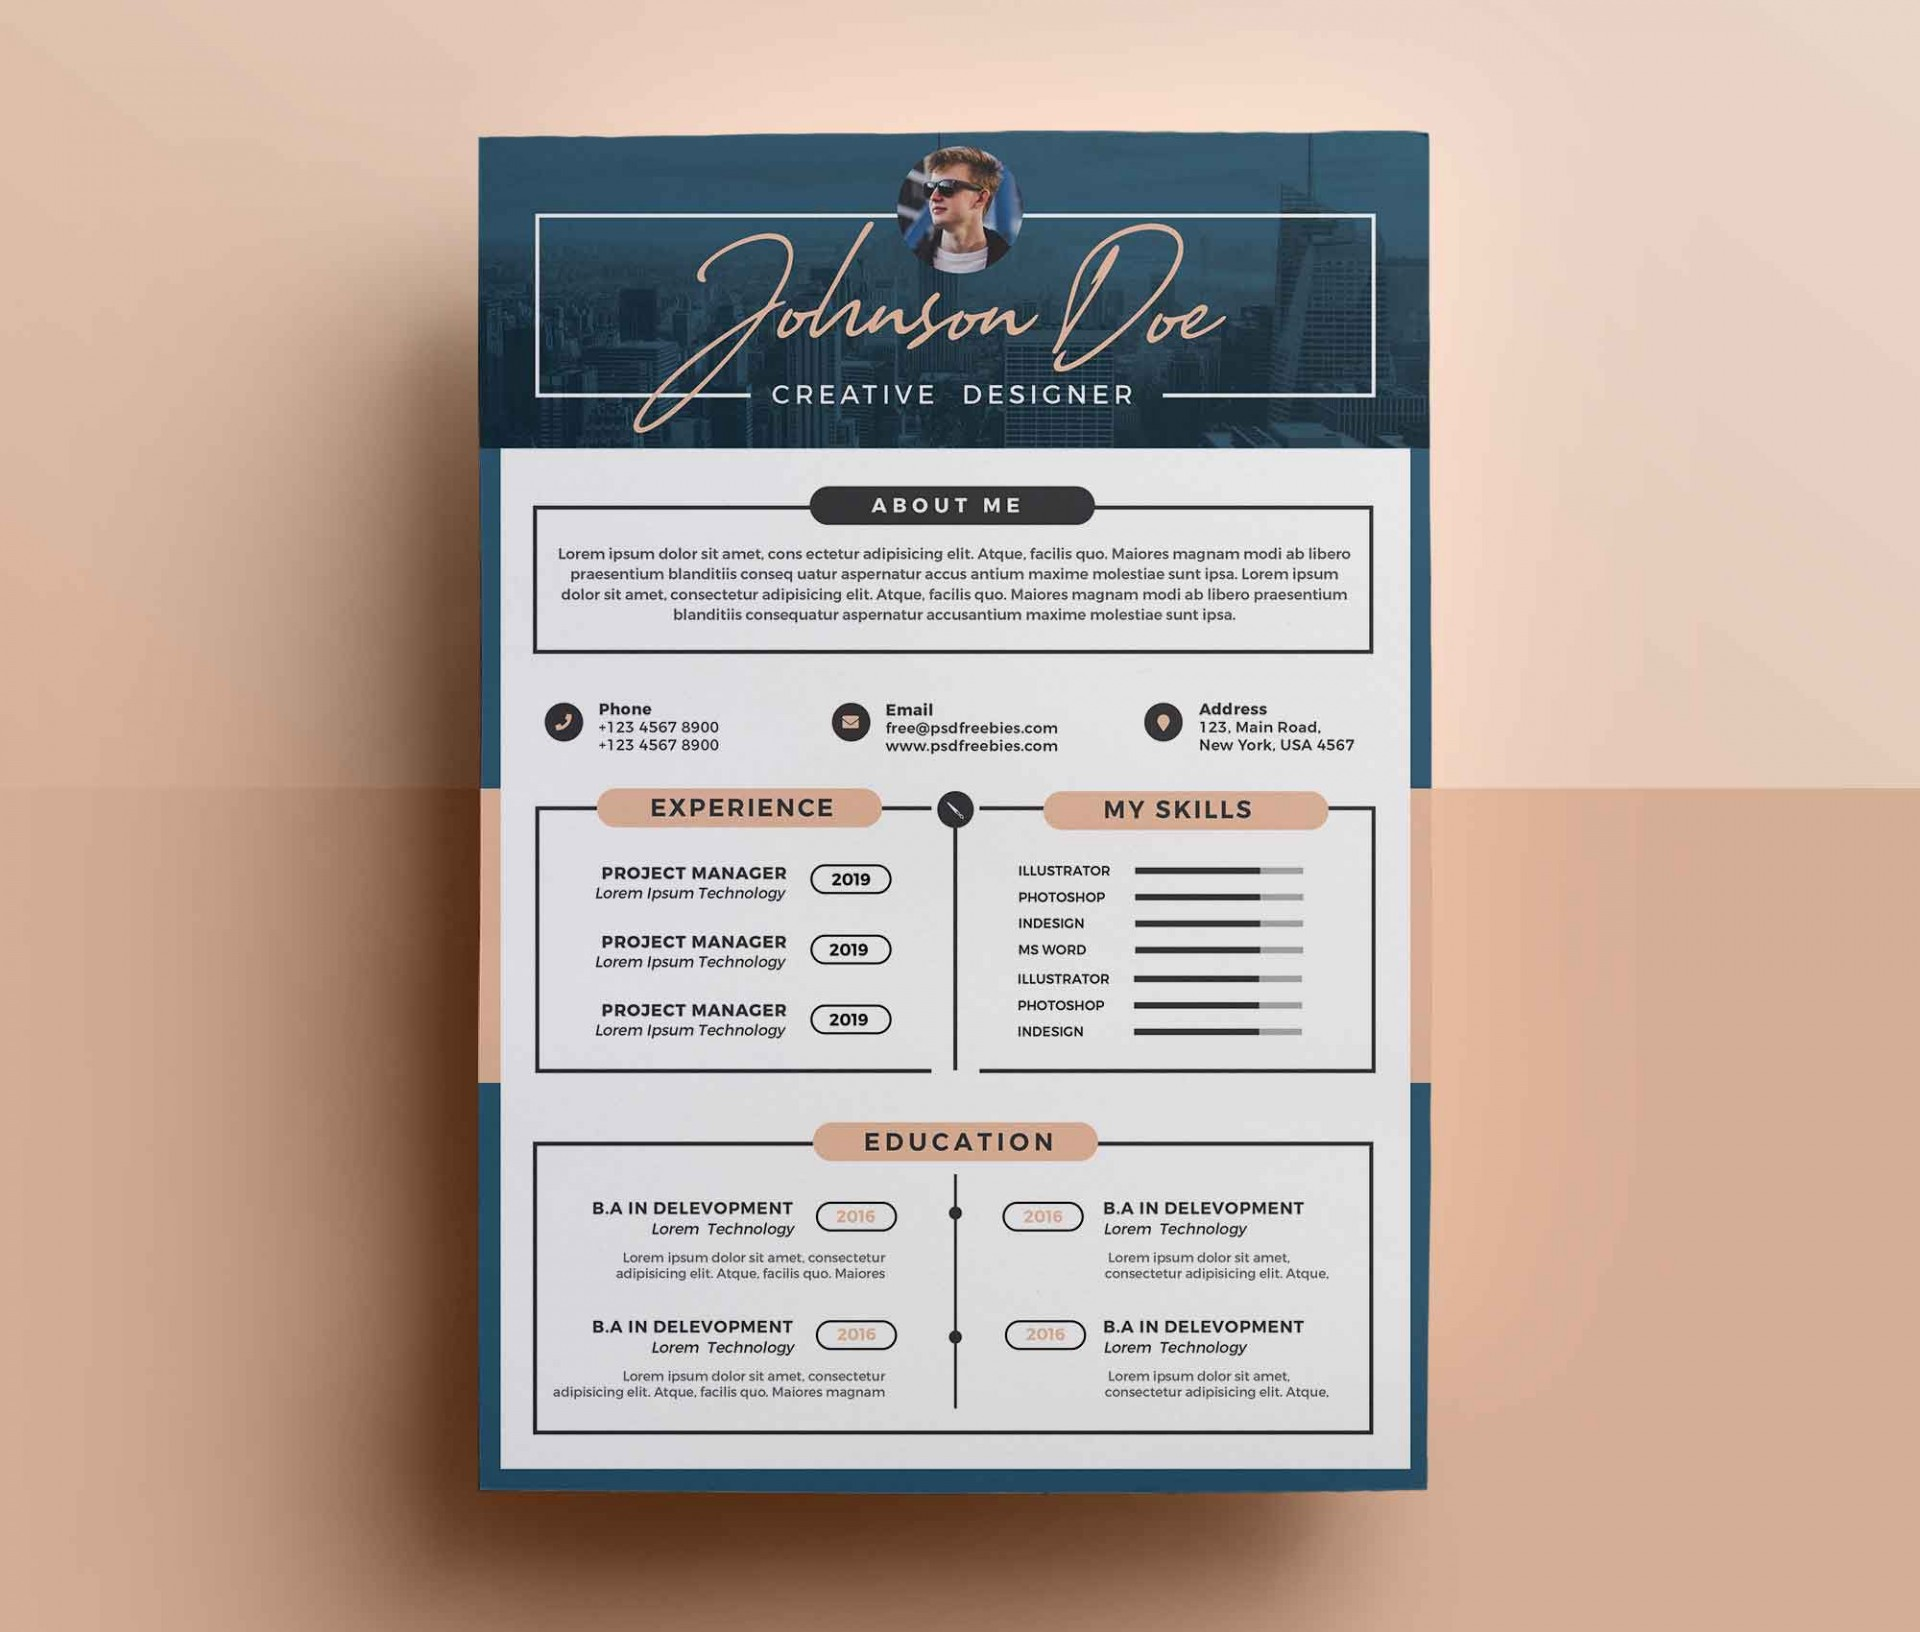 007 Imposing Psd Cv Template Free High Definition  2018 Vector Photo And File Download Architect1920